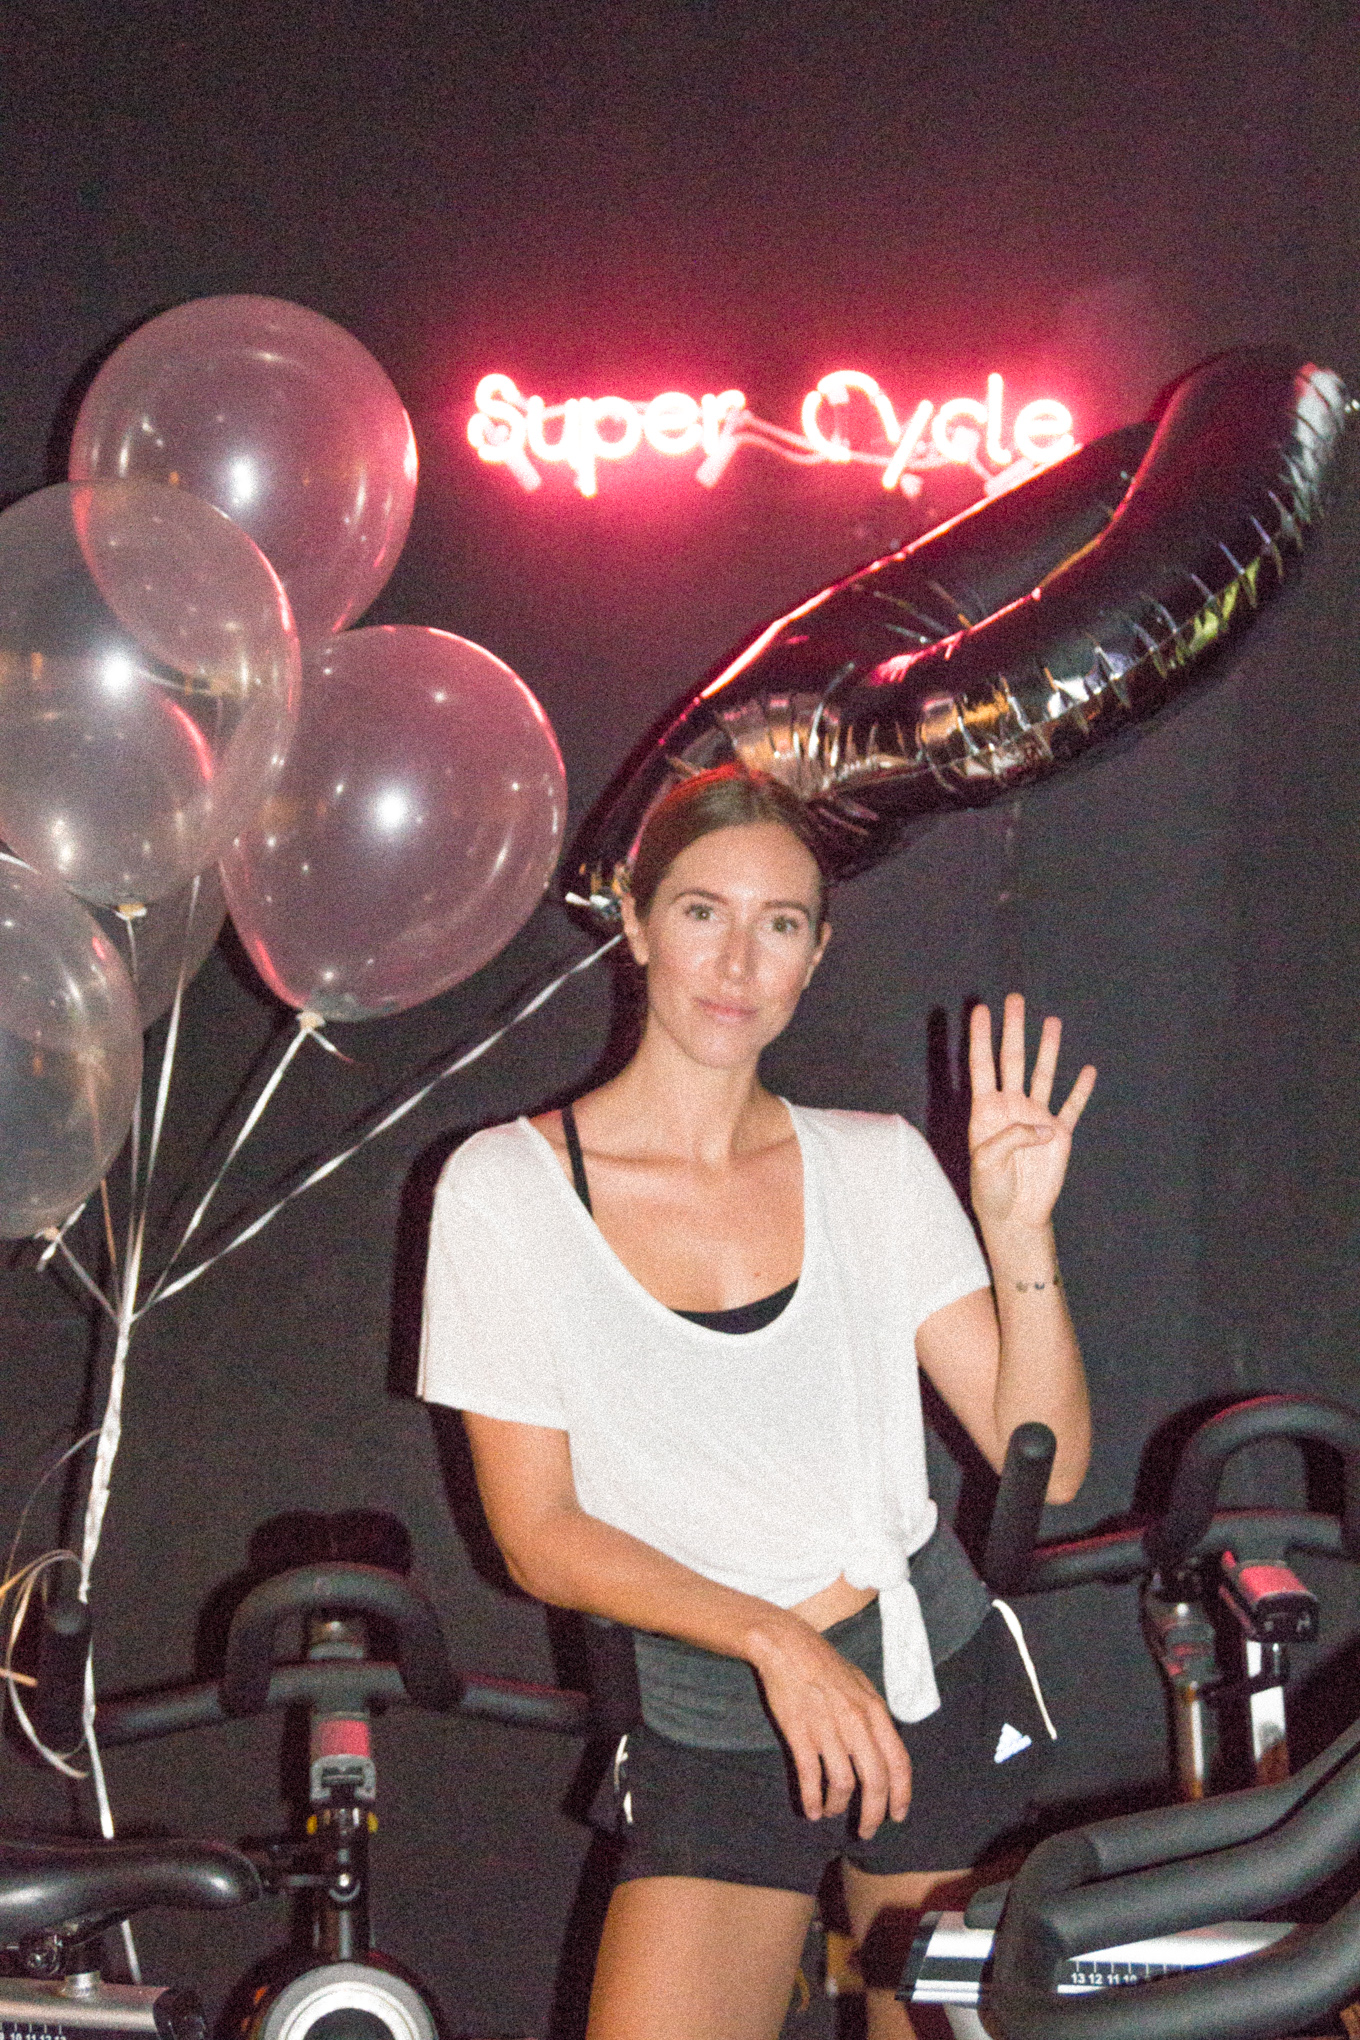 4-Jahre-The-Daily-Dose-Supercycle-Vienna-Giveaway-27